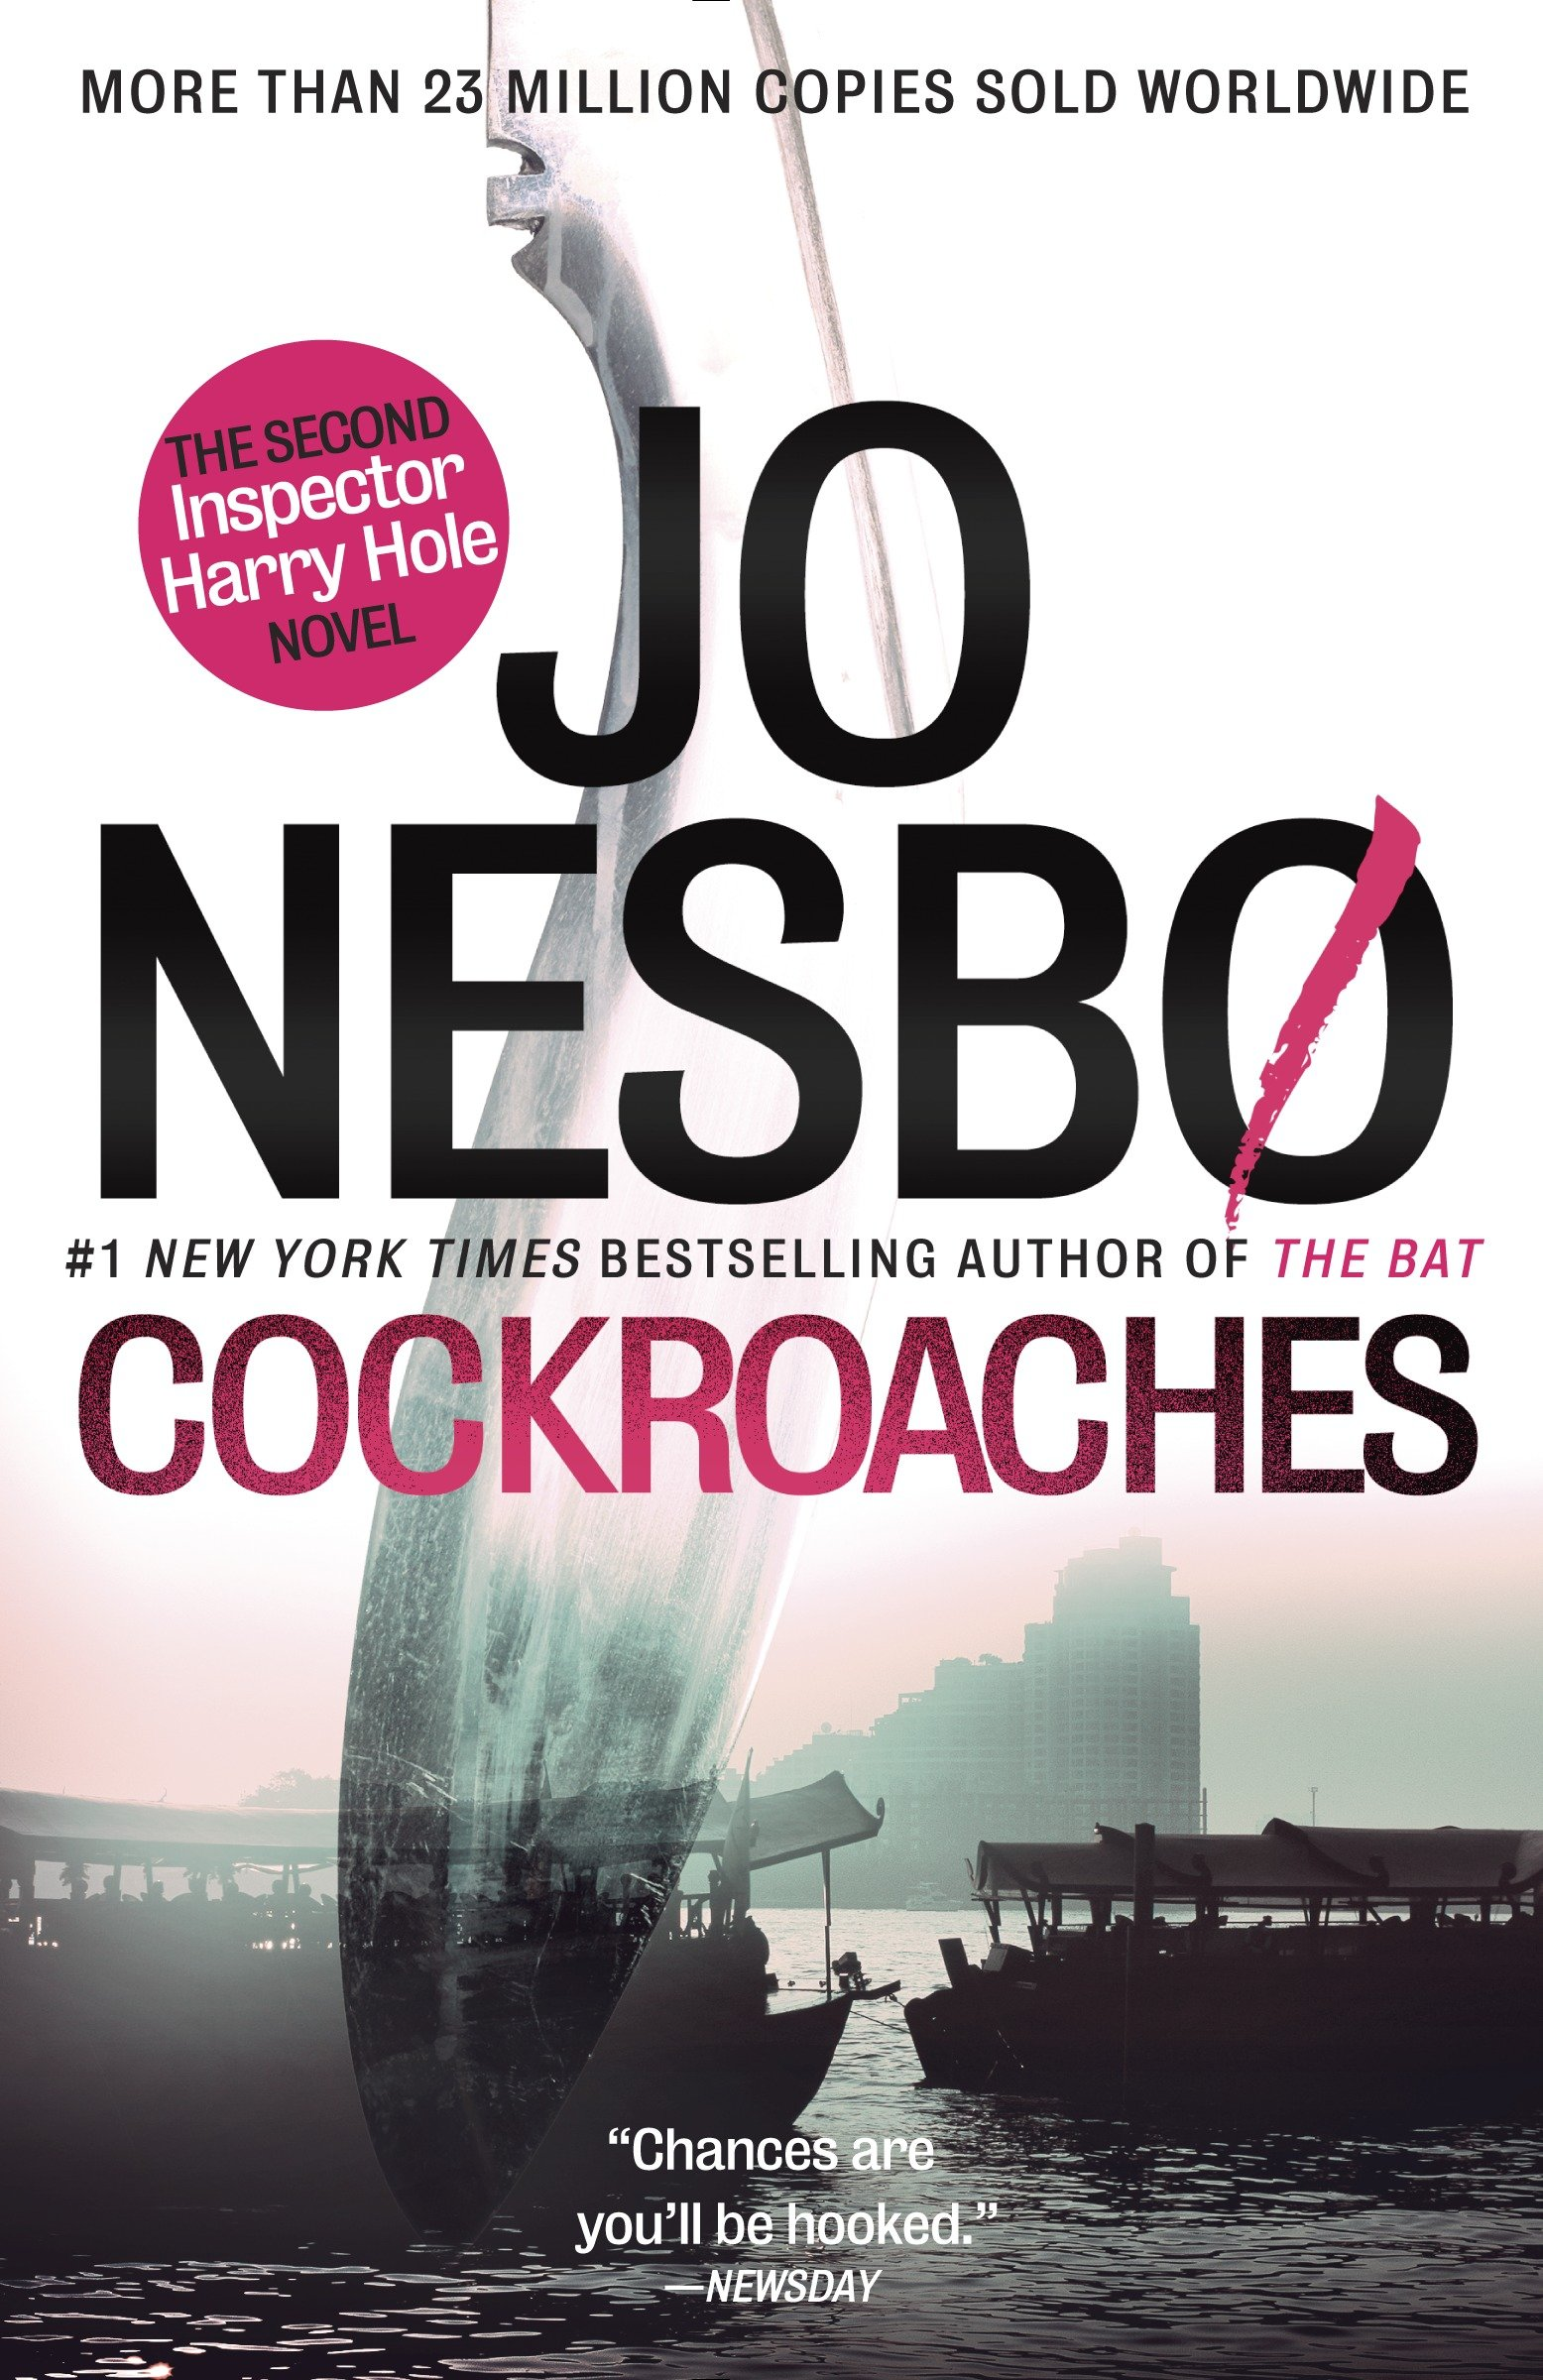 Cockroaches the second Inspector Harry Hole novel cover image